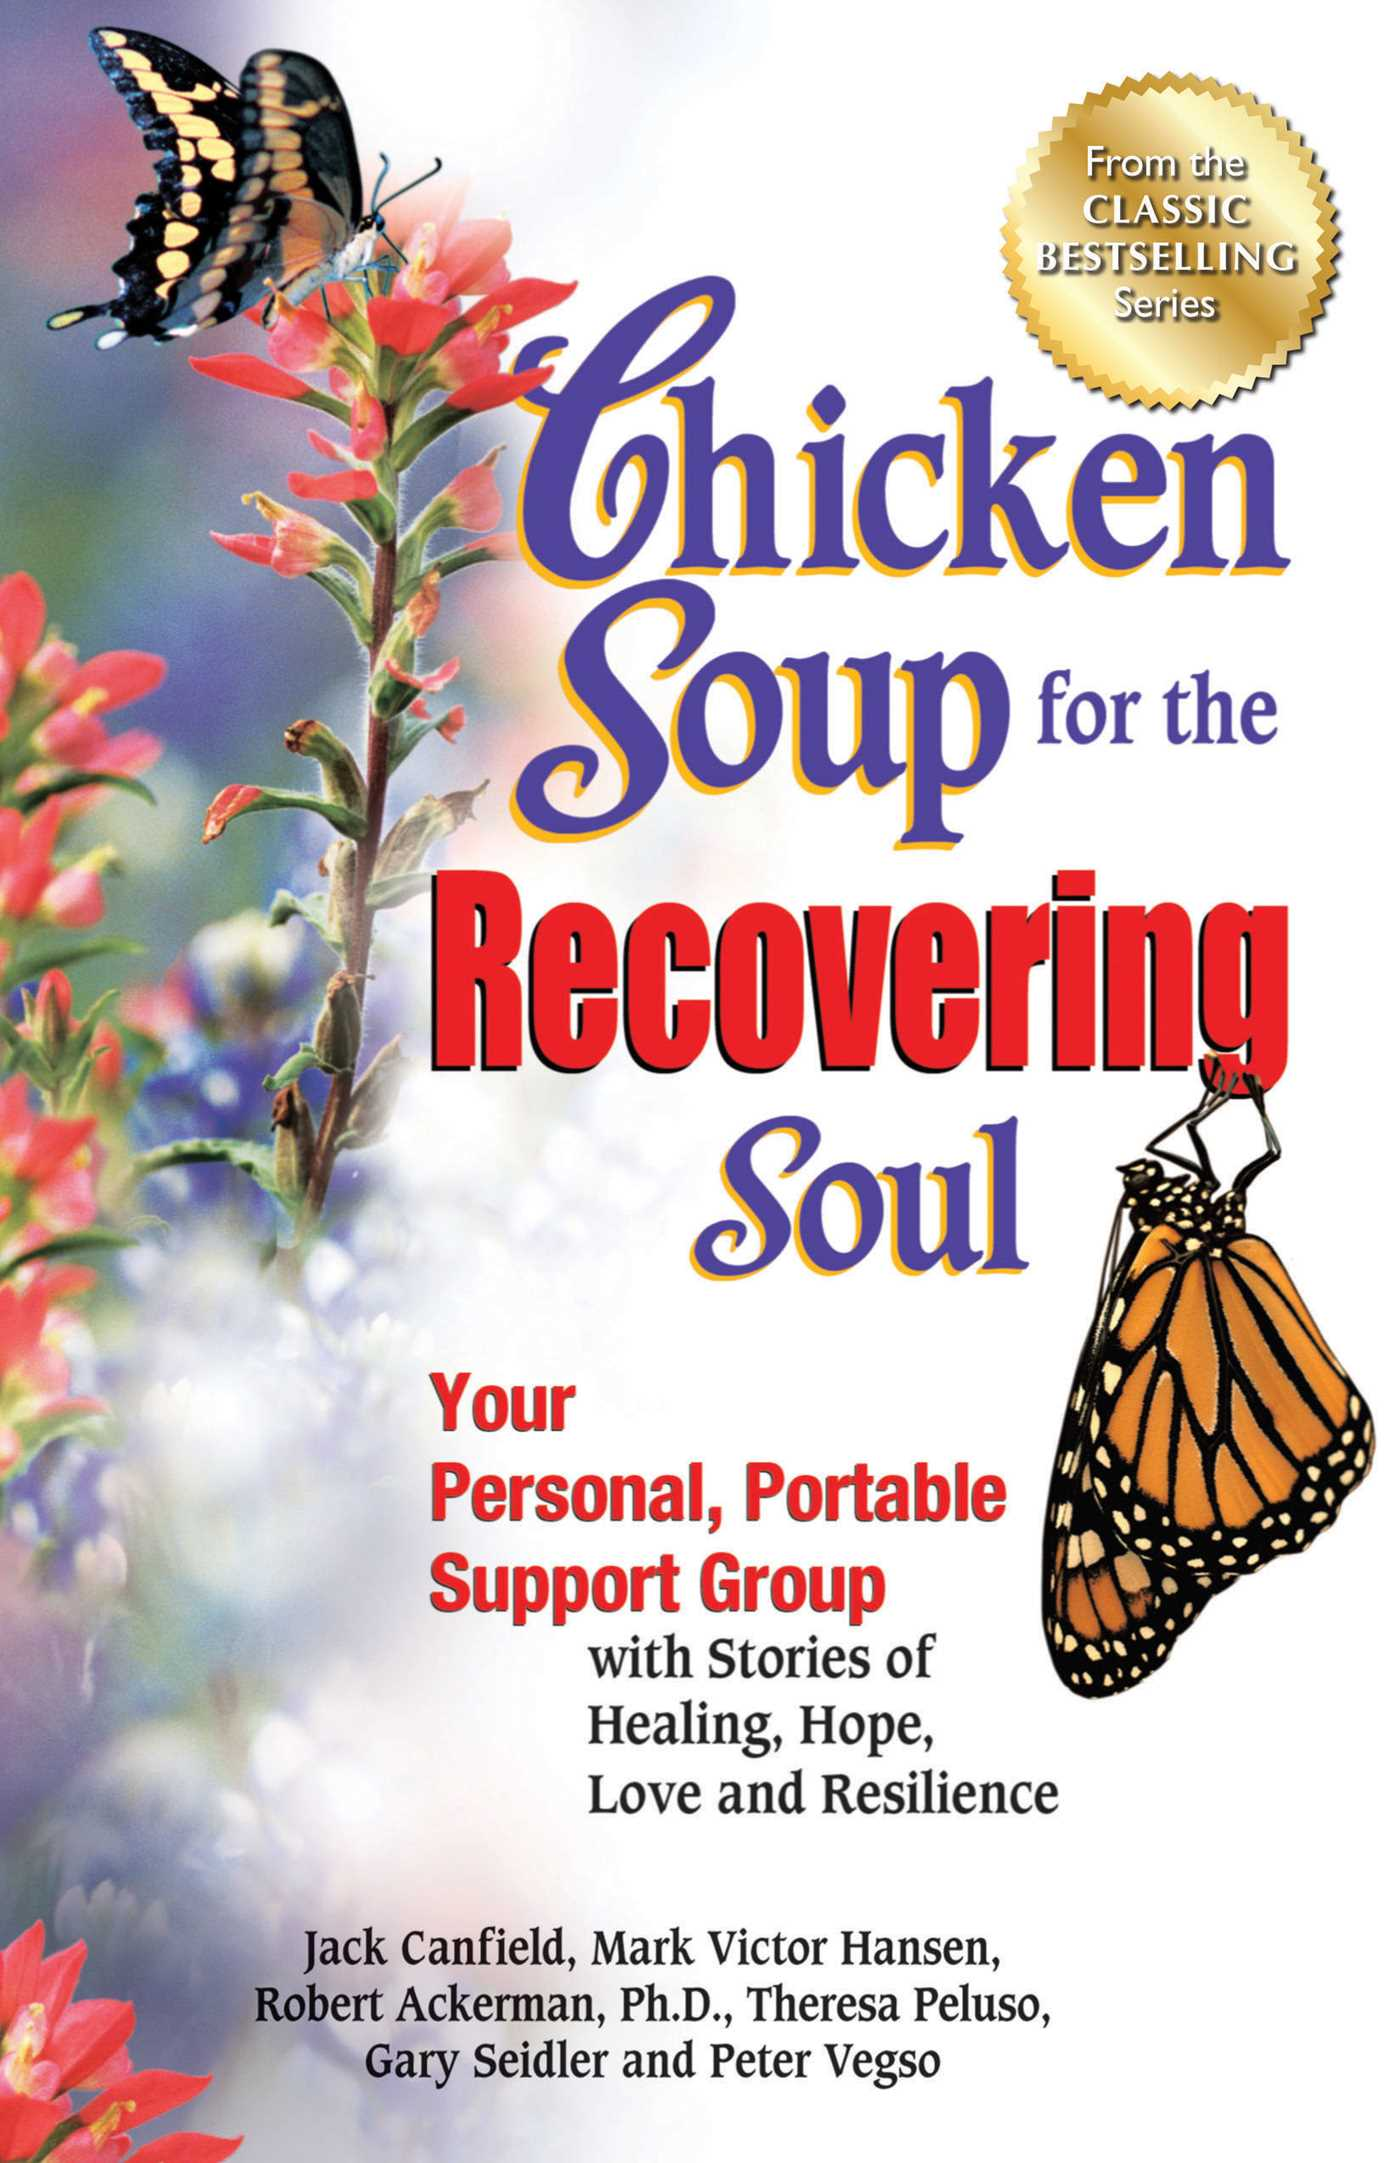 Chicken Soup for the Recovering Soul Your Personal, Portable Support Group with Stories of Healing, Hope, Love and Resilience